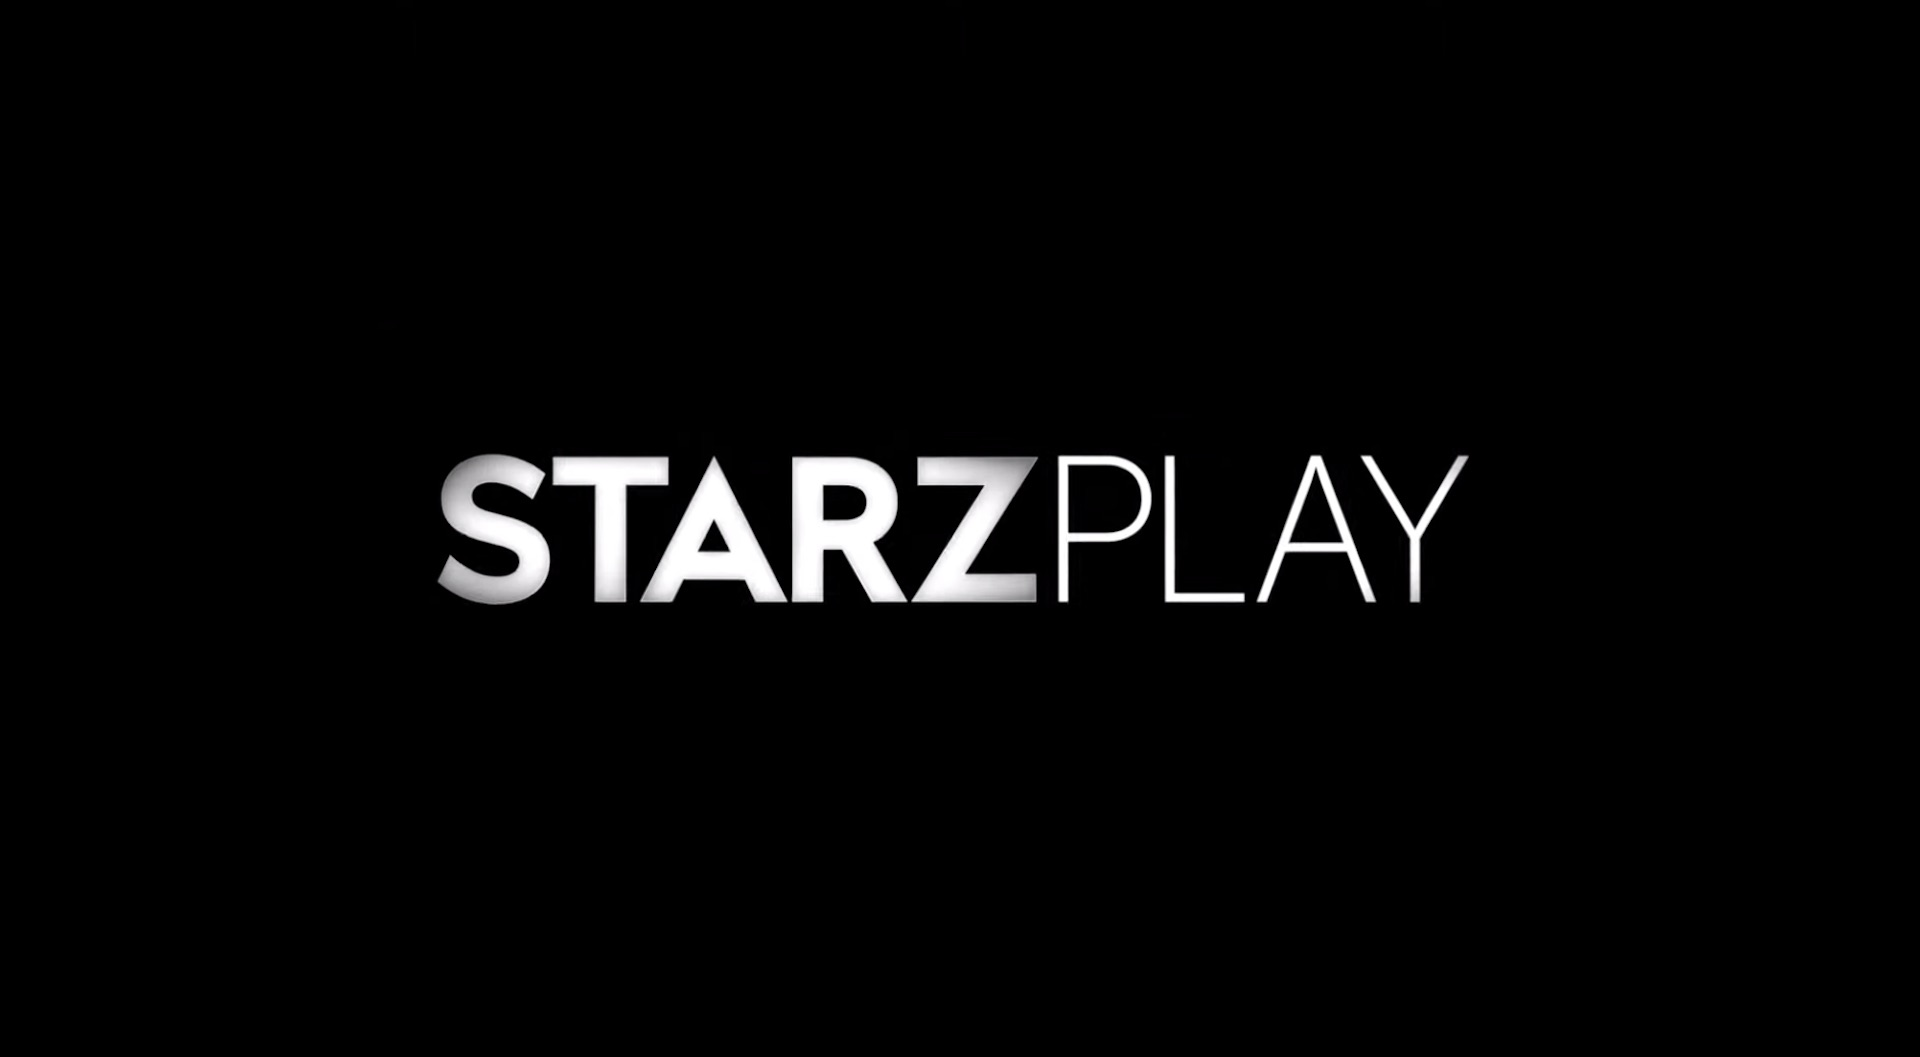 Comment contacter Starzplay ?